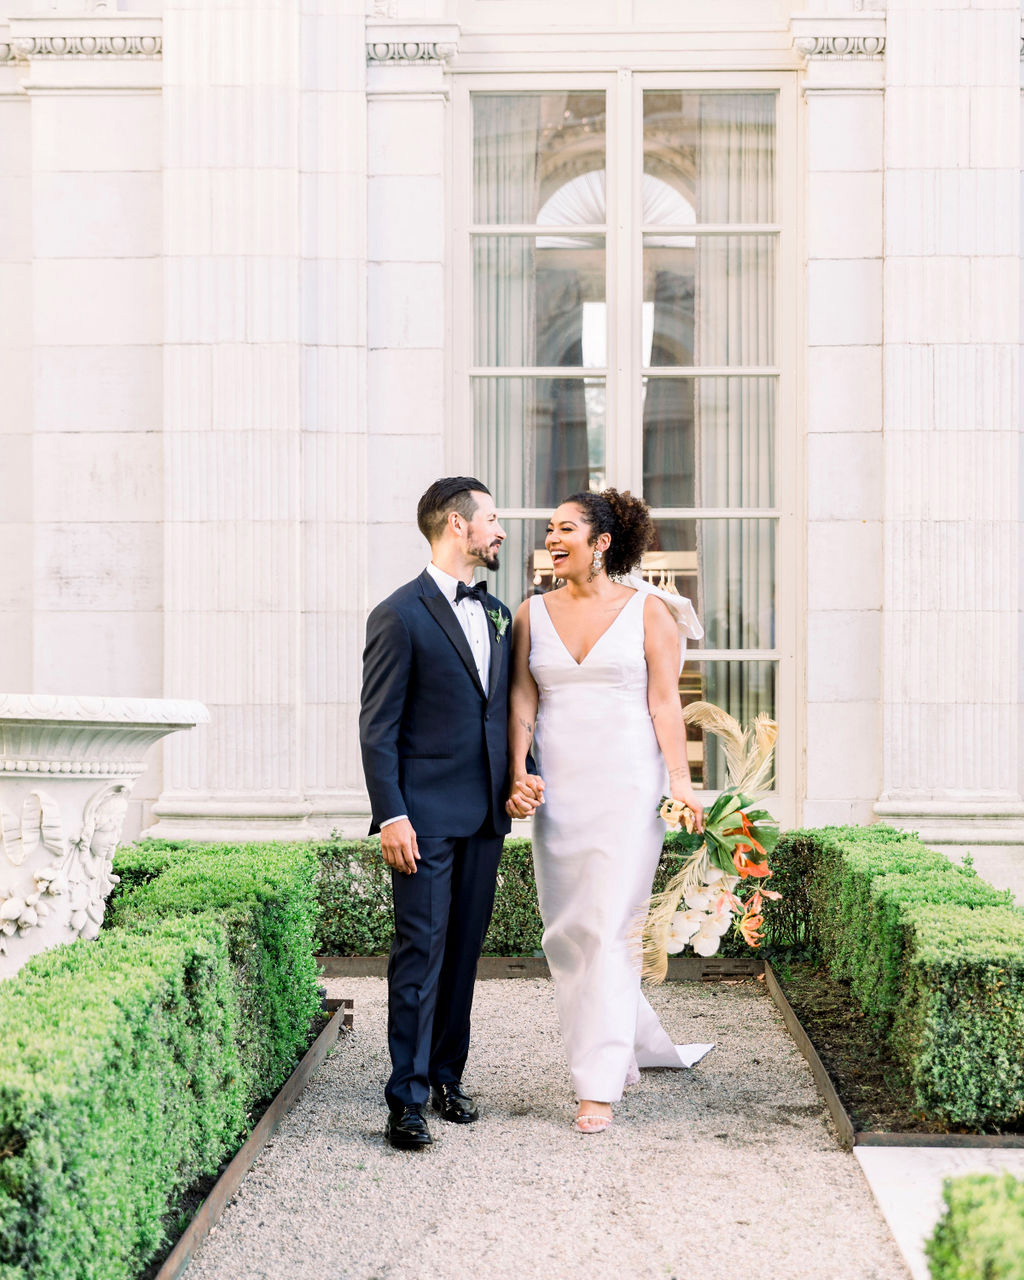 dalila elliot wedding couple in front of mansion